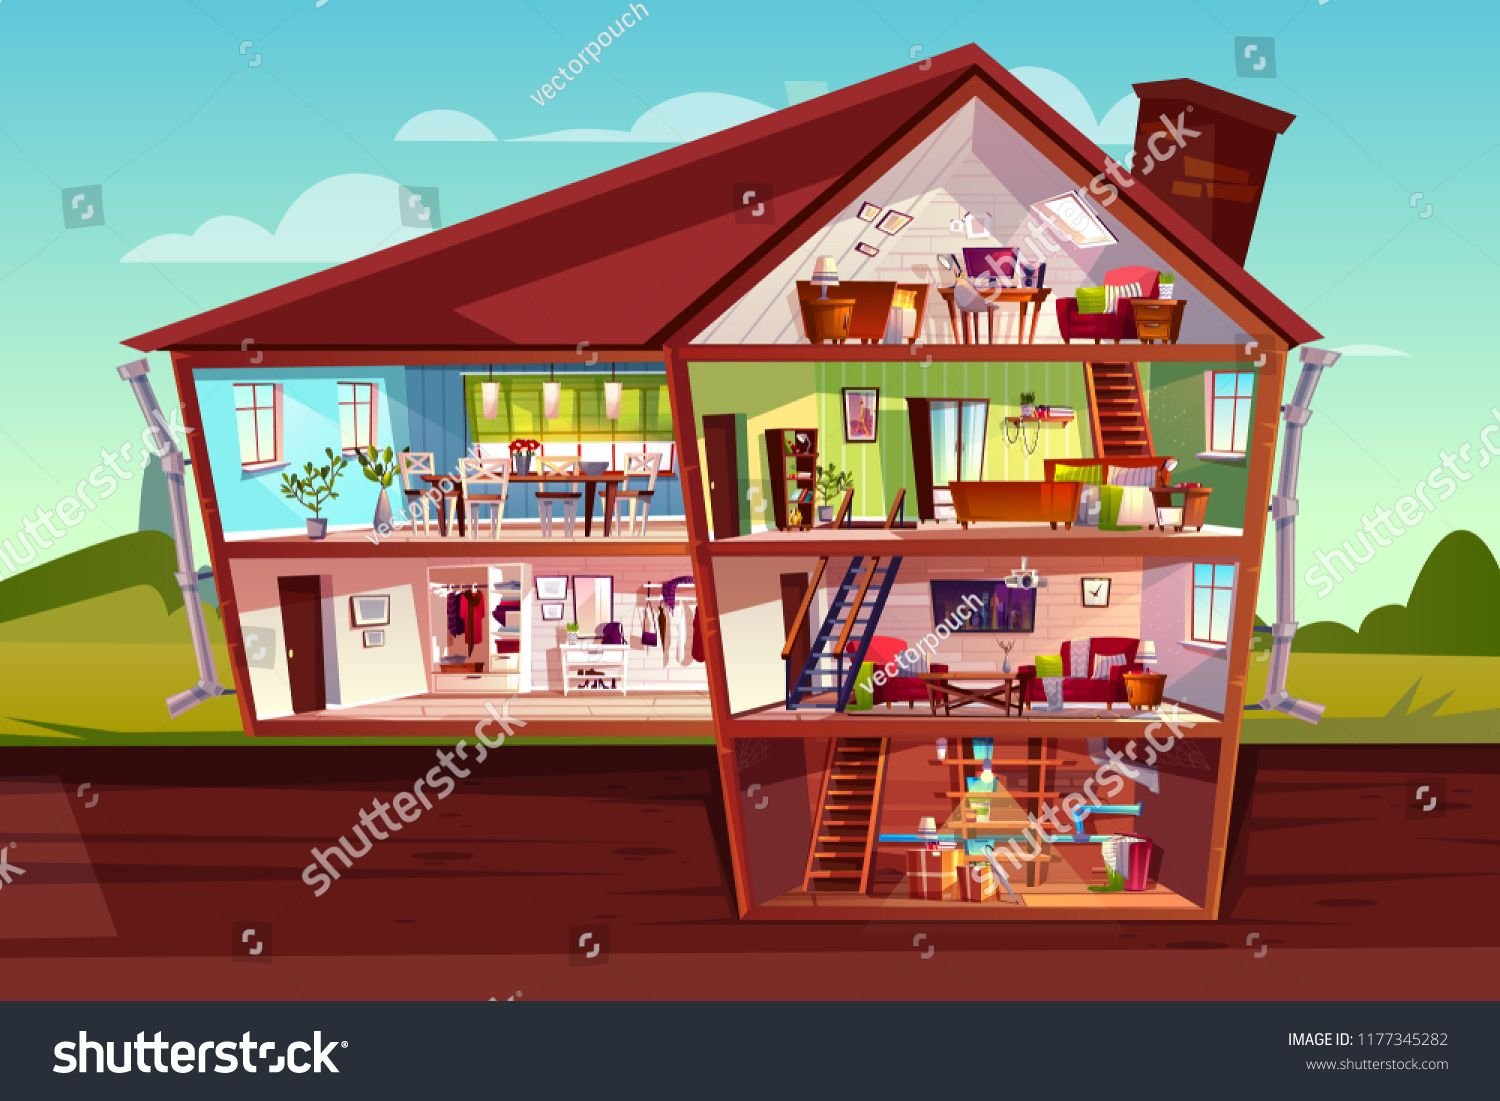 House Cross Section Vector Illustration Of Home Interior And Furniture Cartoon Private Mansion Floors Plan Of Attic Livin House House Interior Mansions Homes